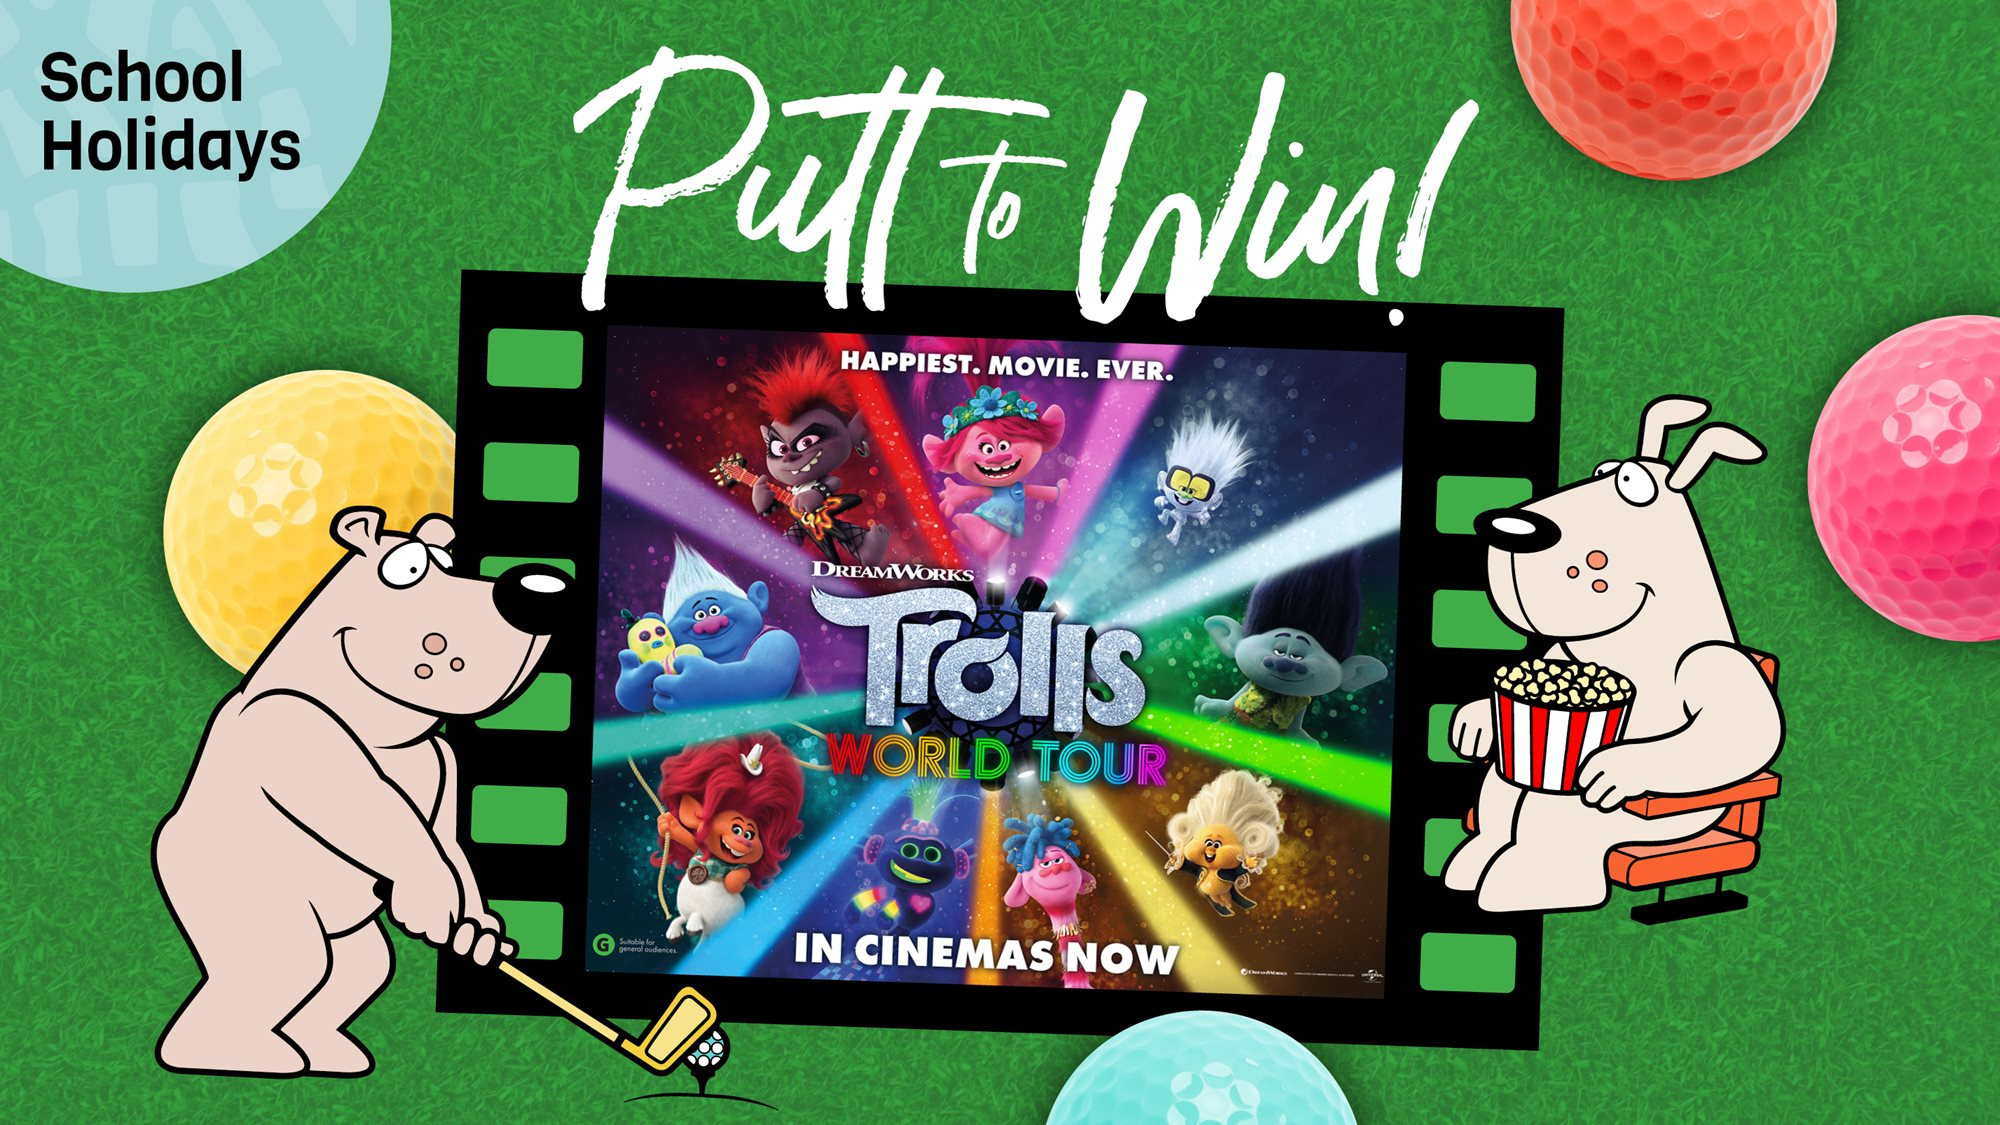 Putt & Win these school holidays